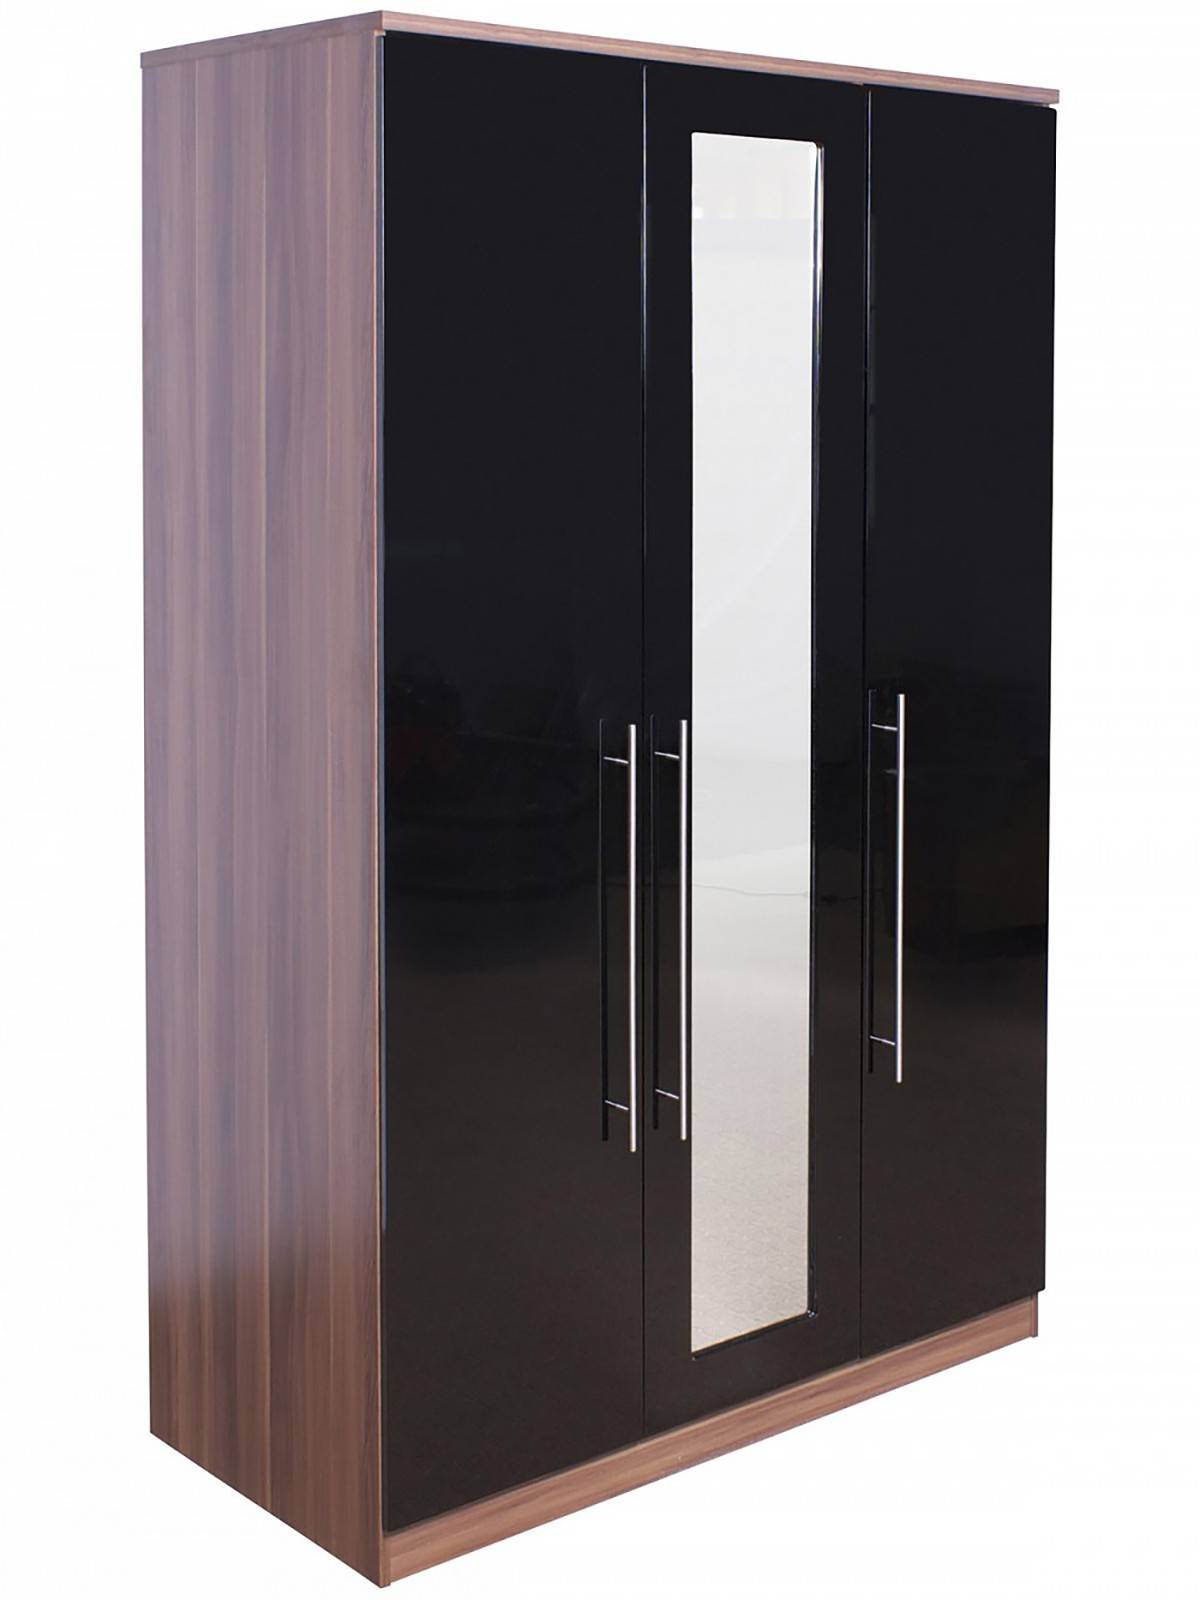 Wardrobes - Furniture - Bedroom pertaining to 3 Door Black Wardrobes (Image 14 of 15)